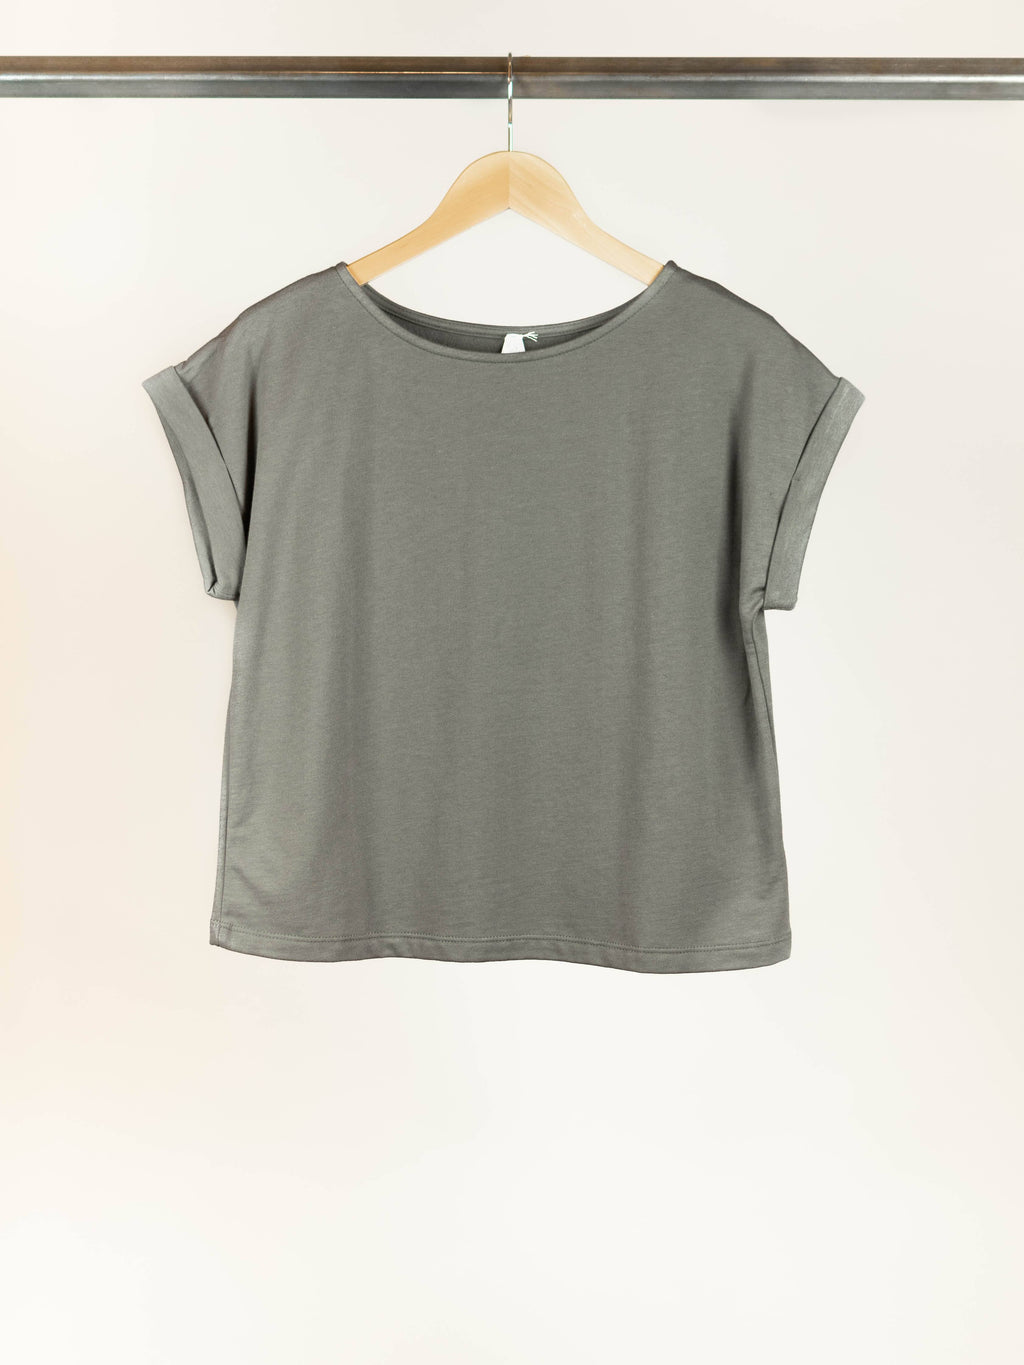 Heavyweight Hemp / Cotton Crop Top